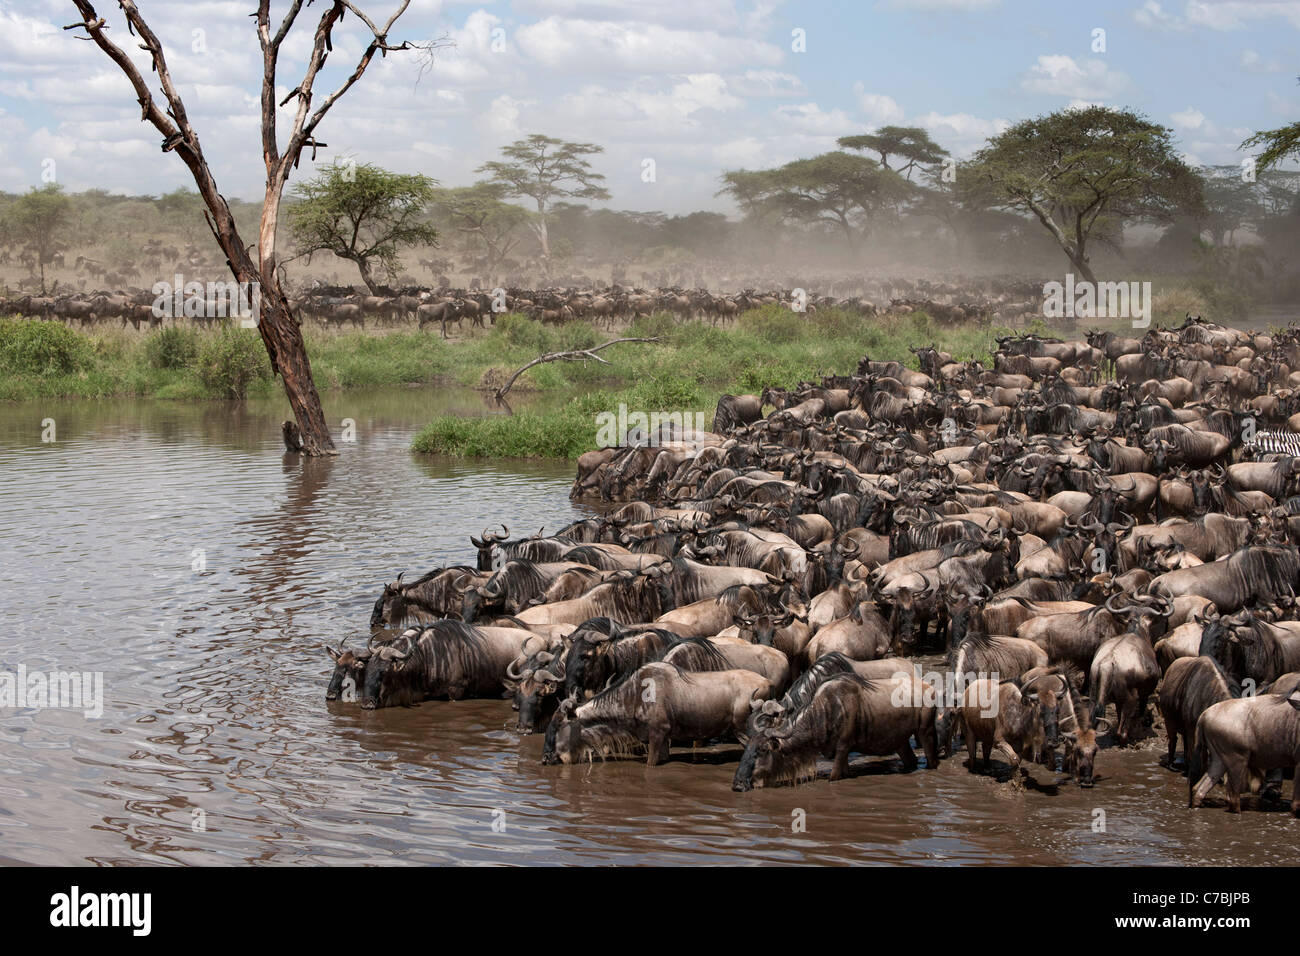 Zebras and Wildebeest at the Serengeti National Park, Tanzania, Africa - Stock Image